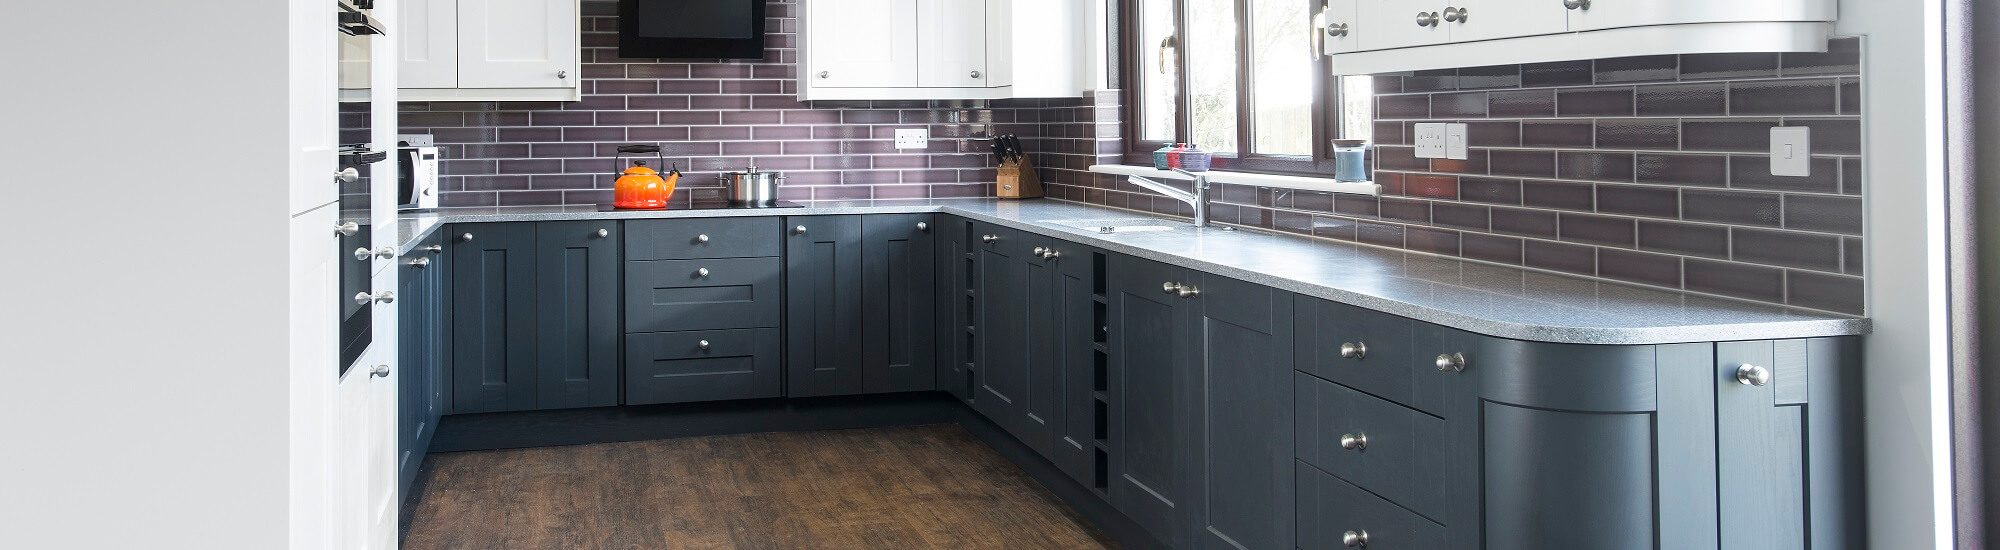 Painted kitchen in grey and white colour scheme